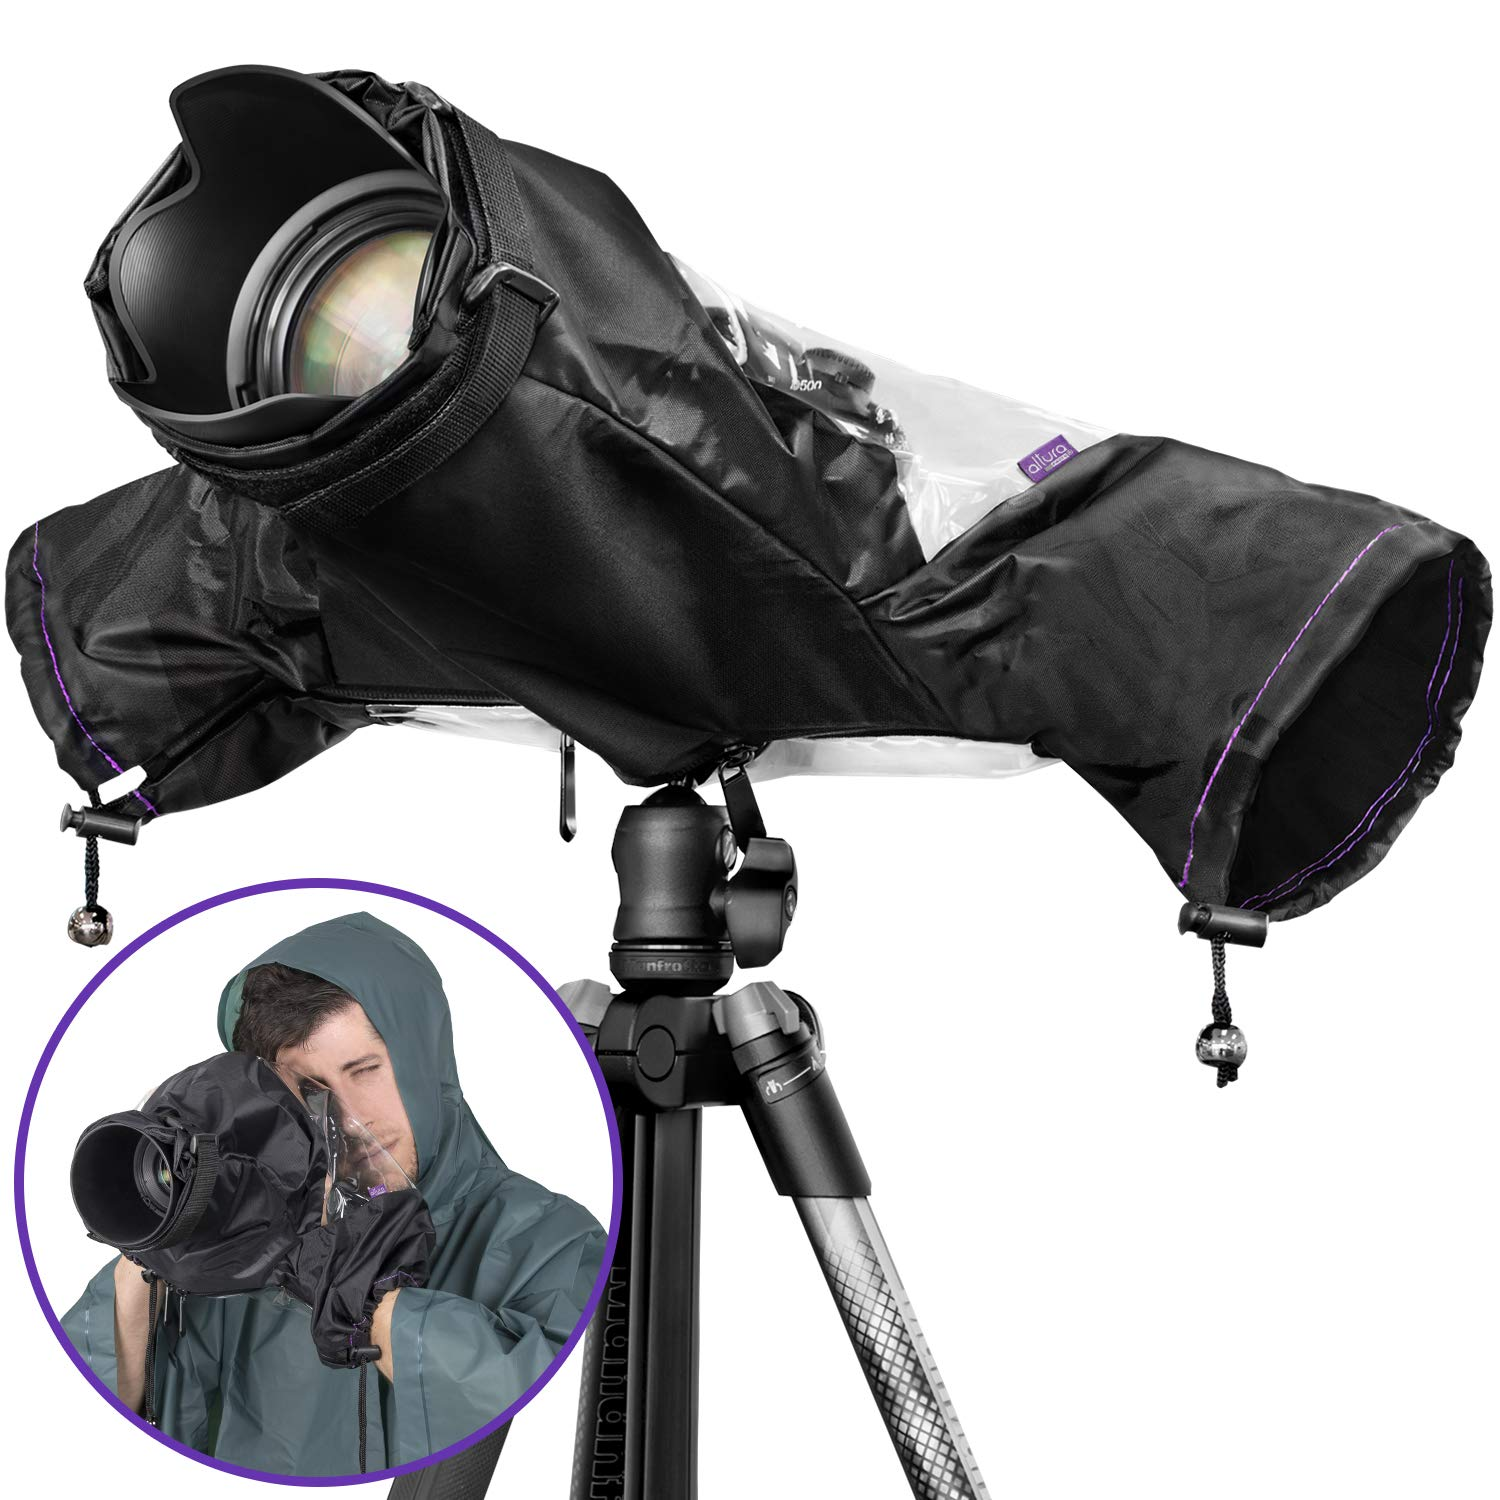 Altura Photo Professional Rain Cover for Large DSLR Cameras KZ0008